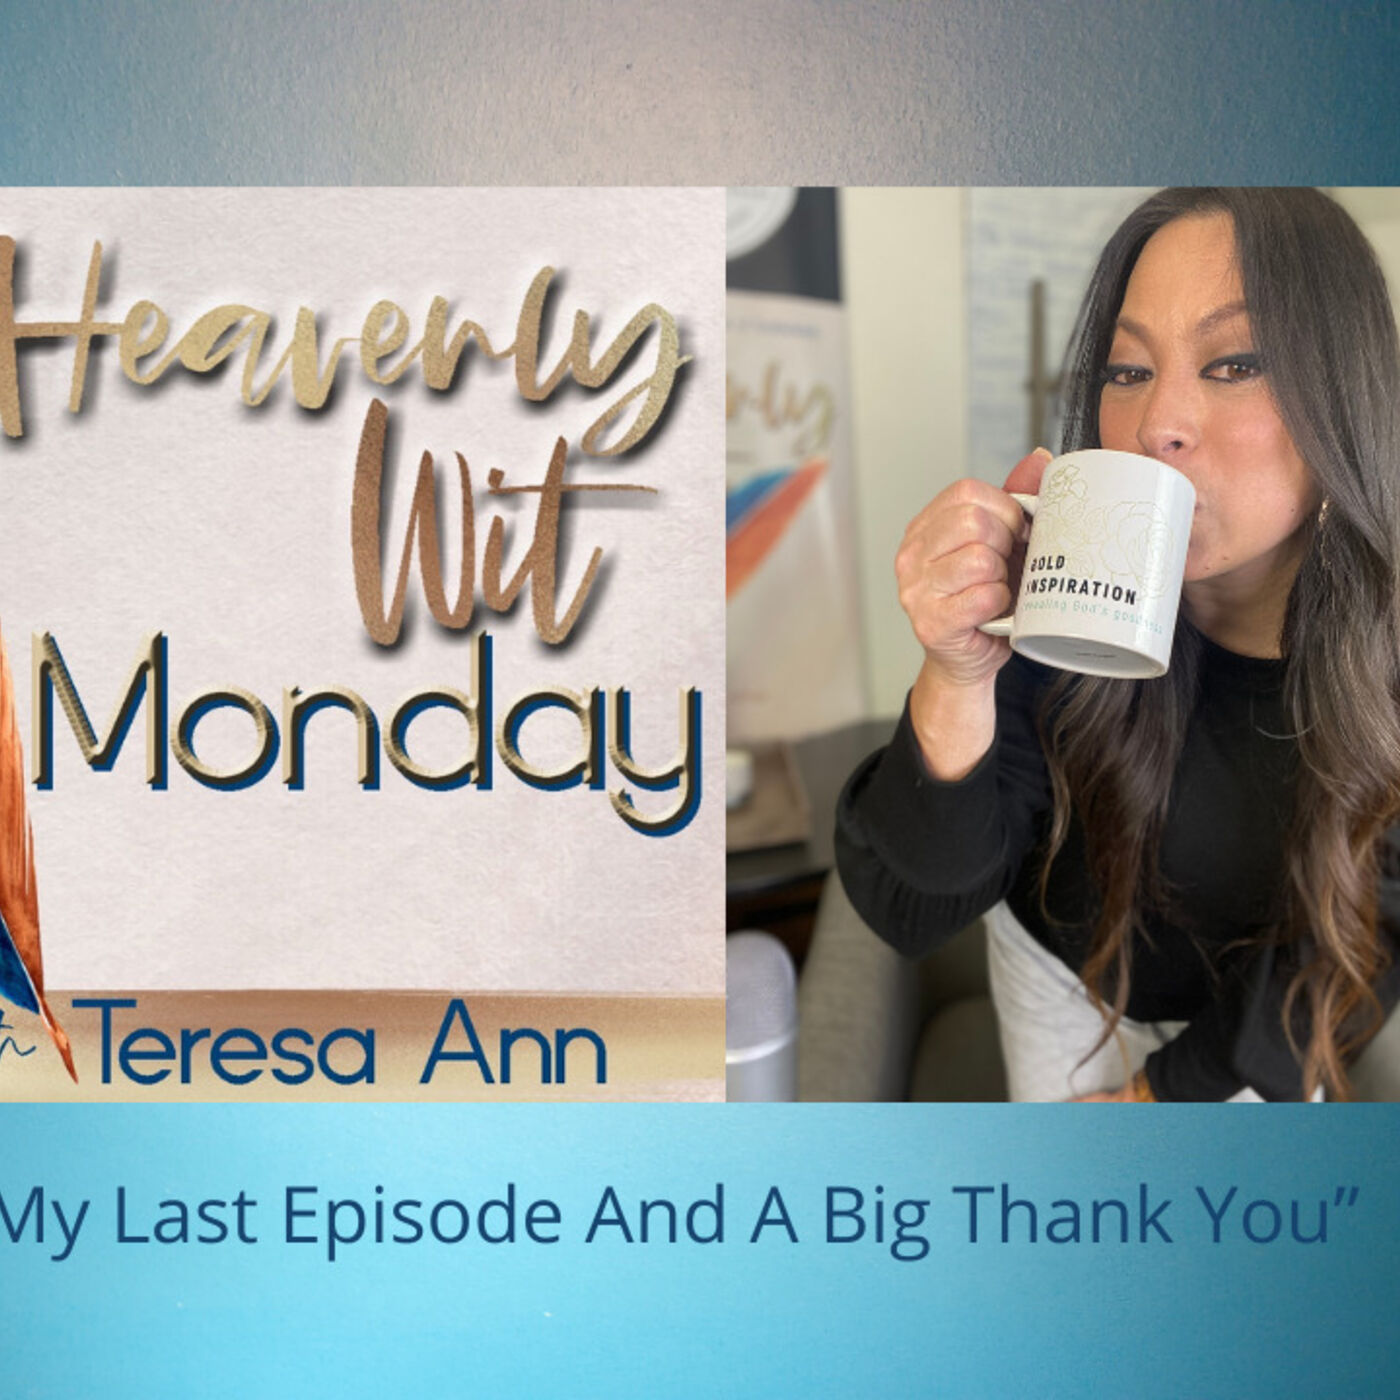 HEAVENLY WIT MONDAY   MY LAST EPISODE AND A BIG THANK YOU!